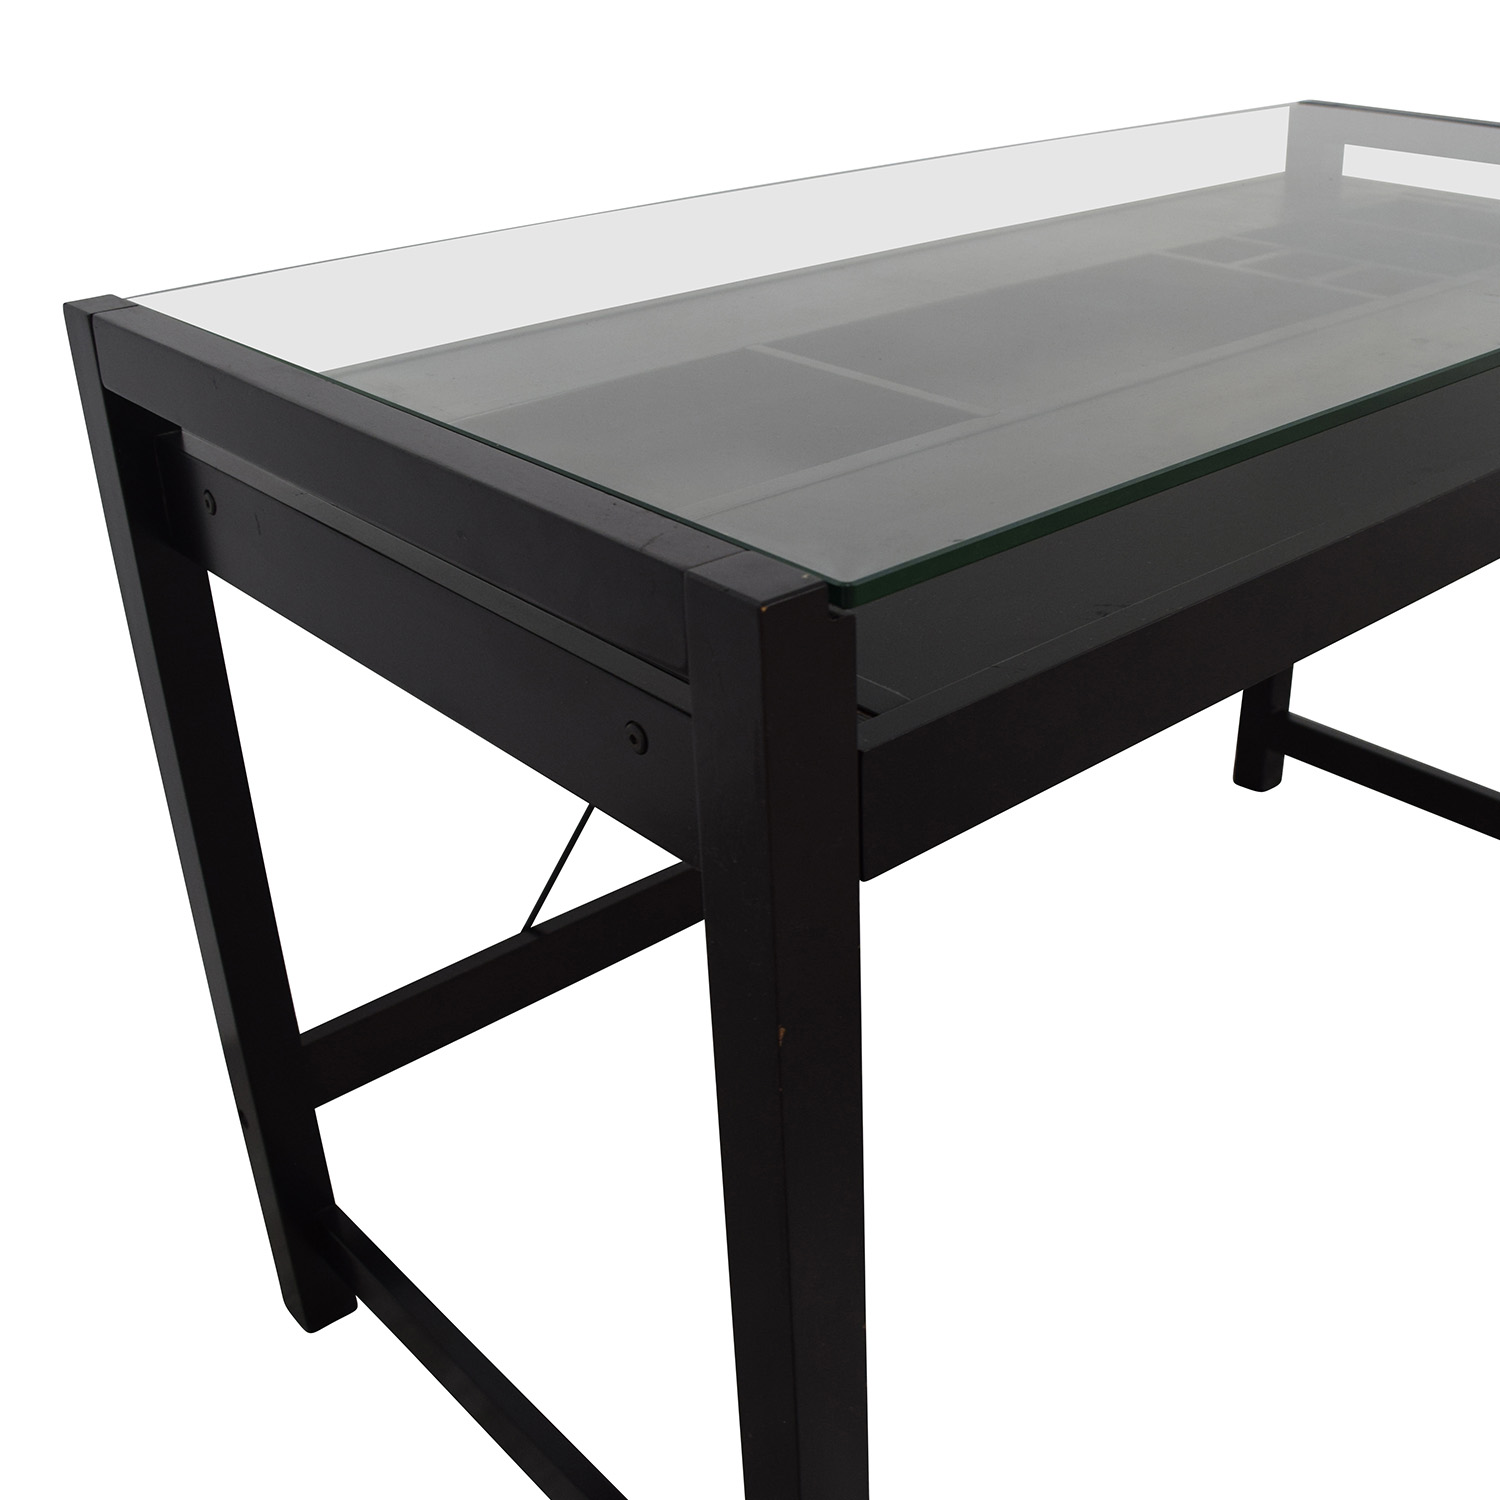 Acme Acme Loakim Glass Top Computer Desk price